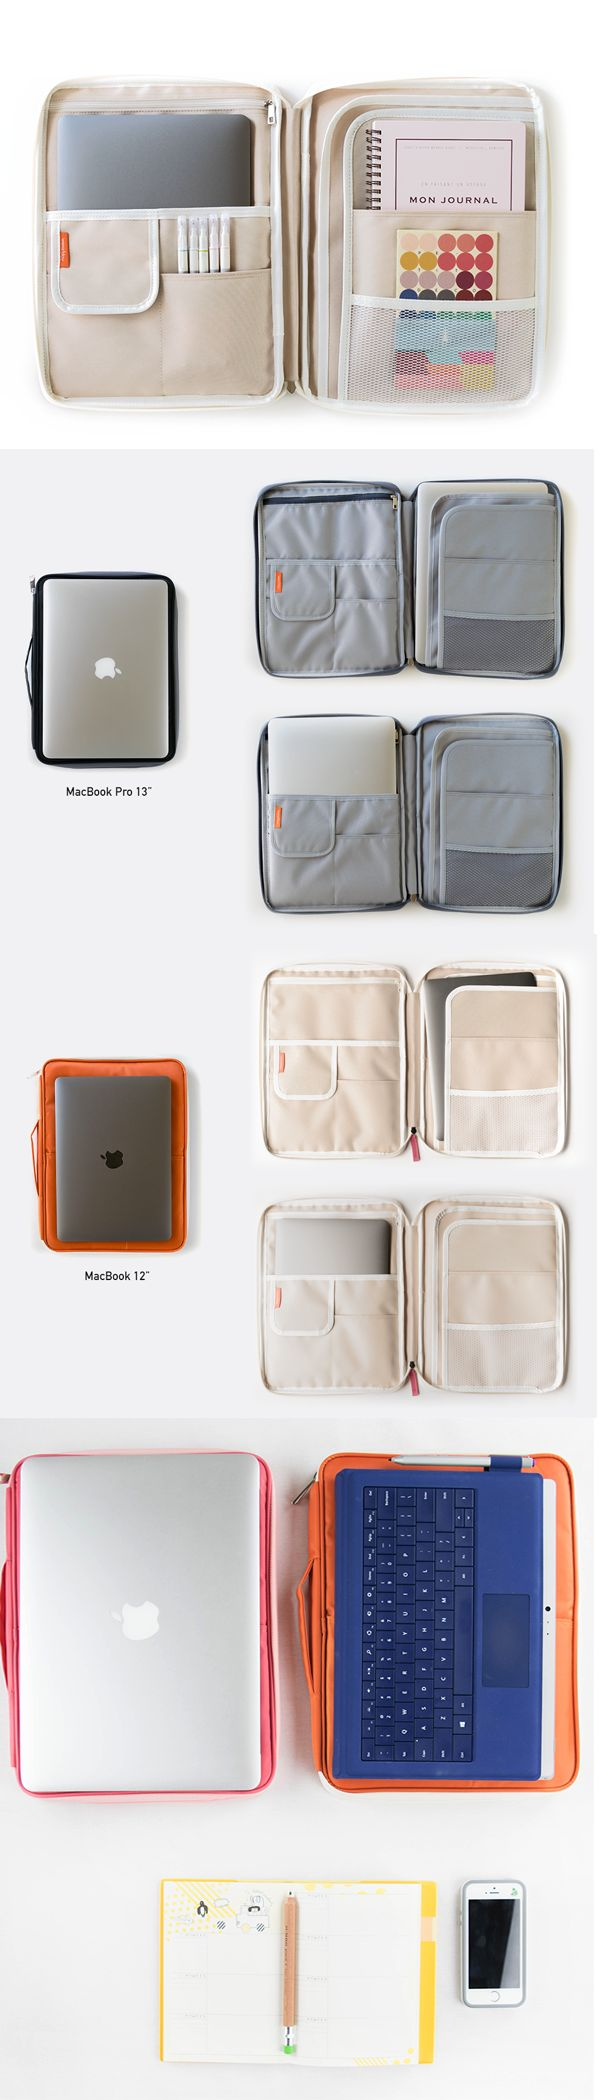 Better Together A4 Pouch v3